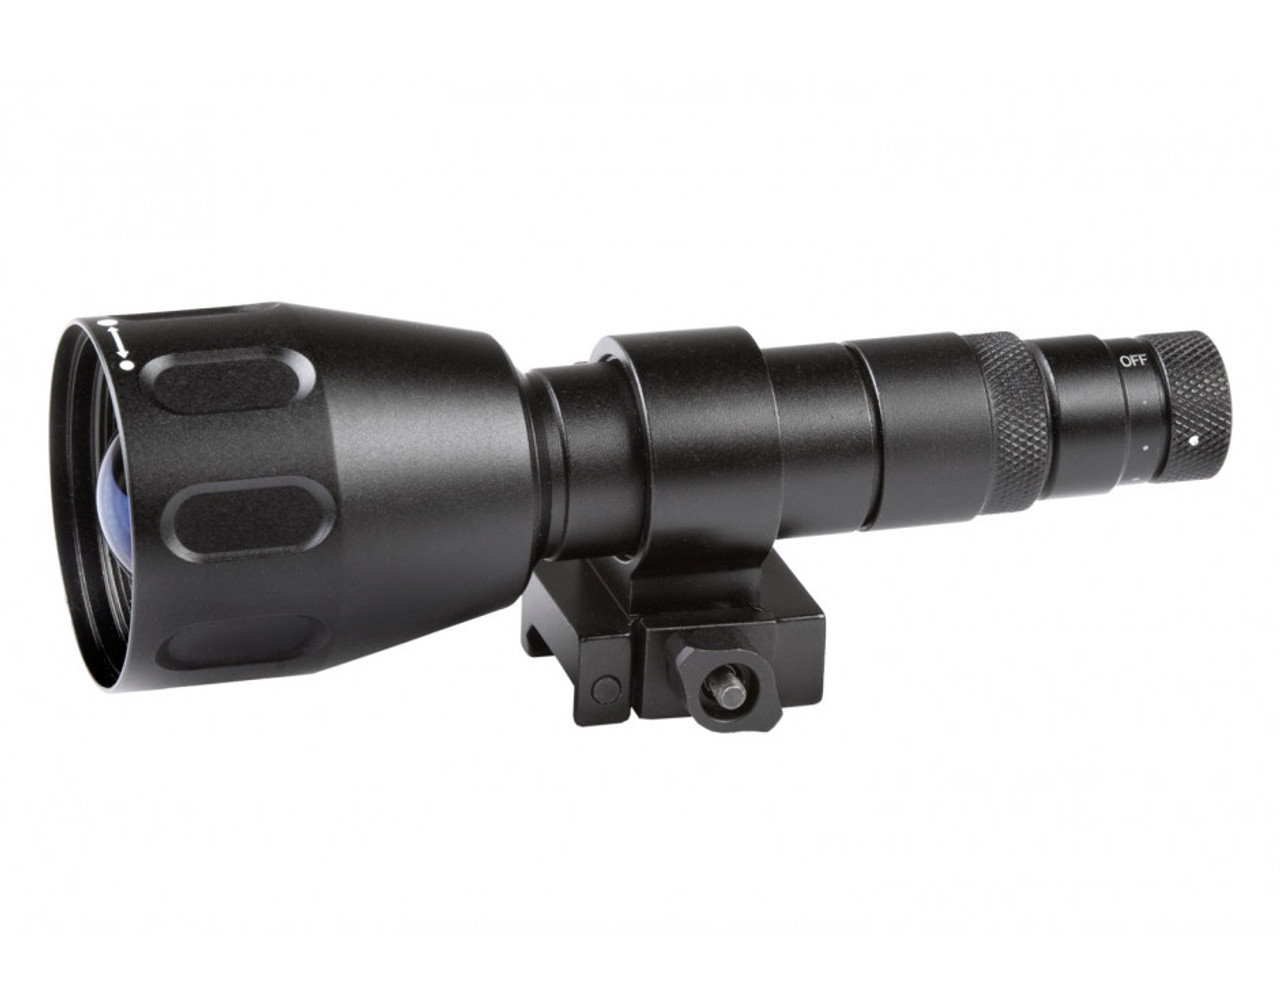 AGM Sioux850 Long-Range Infrared Illuminator comes included with Rechargeable Battery and Charger (501SIOUX850IR1)